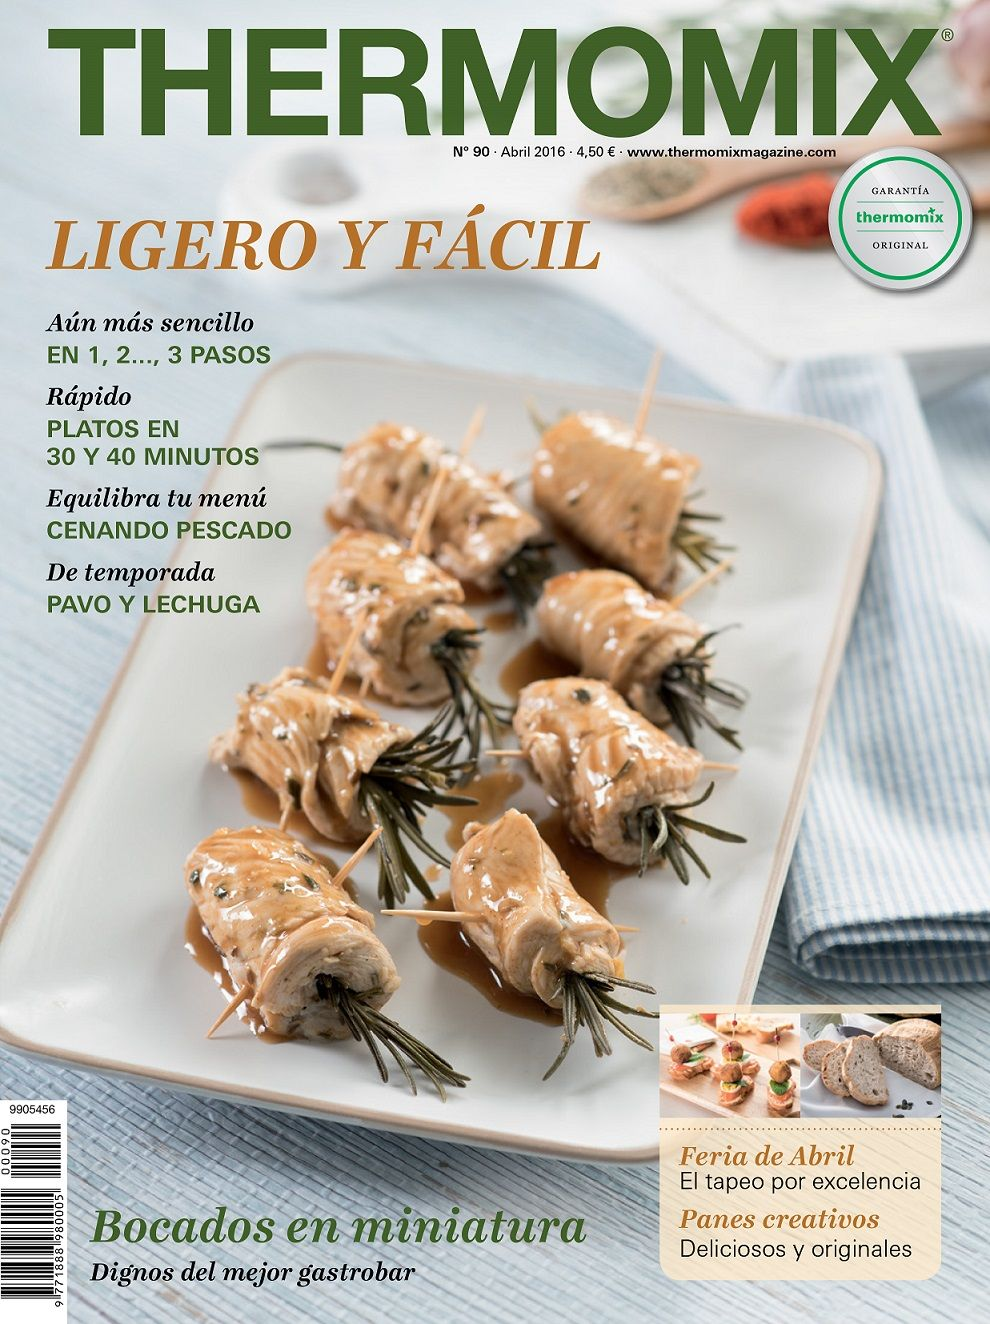 Libros De Thermomix Revista Thermomix De Abril Thermomix Pinterest Thermomix